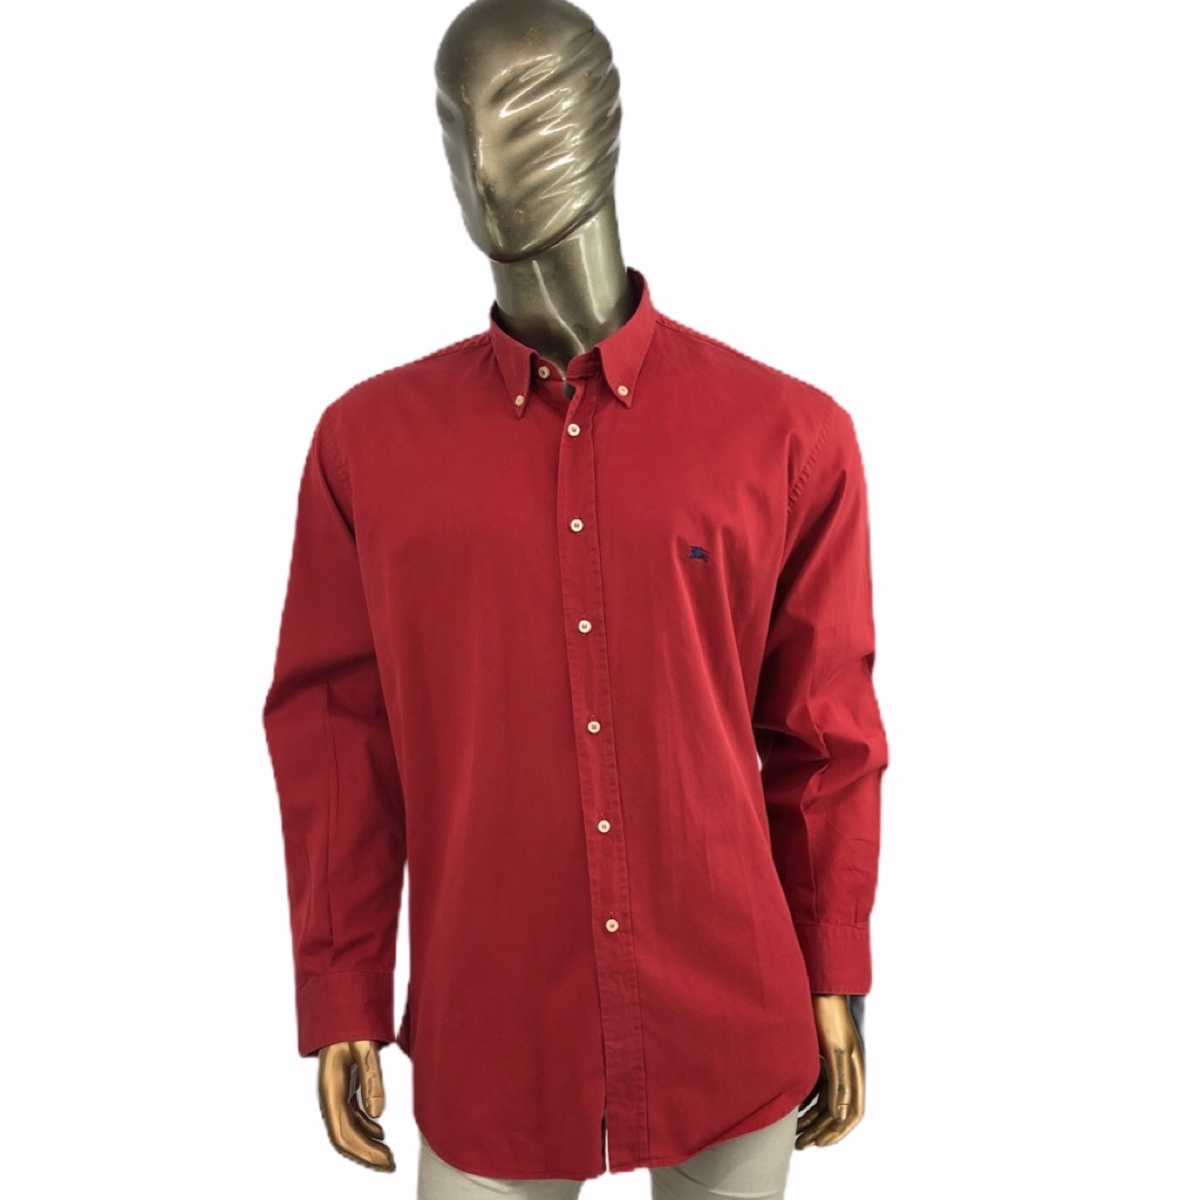 Burberry London shirt red Navy Logo xxl